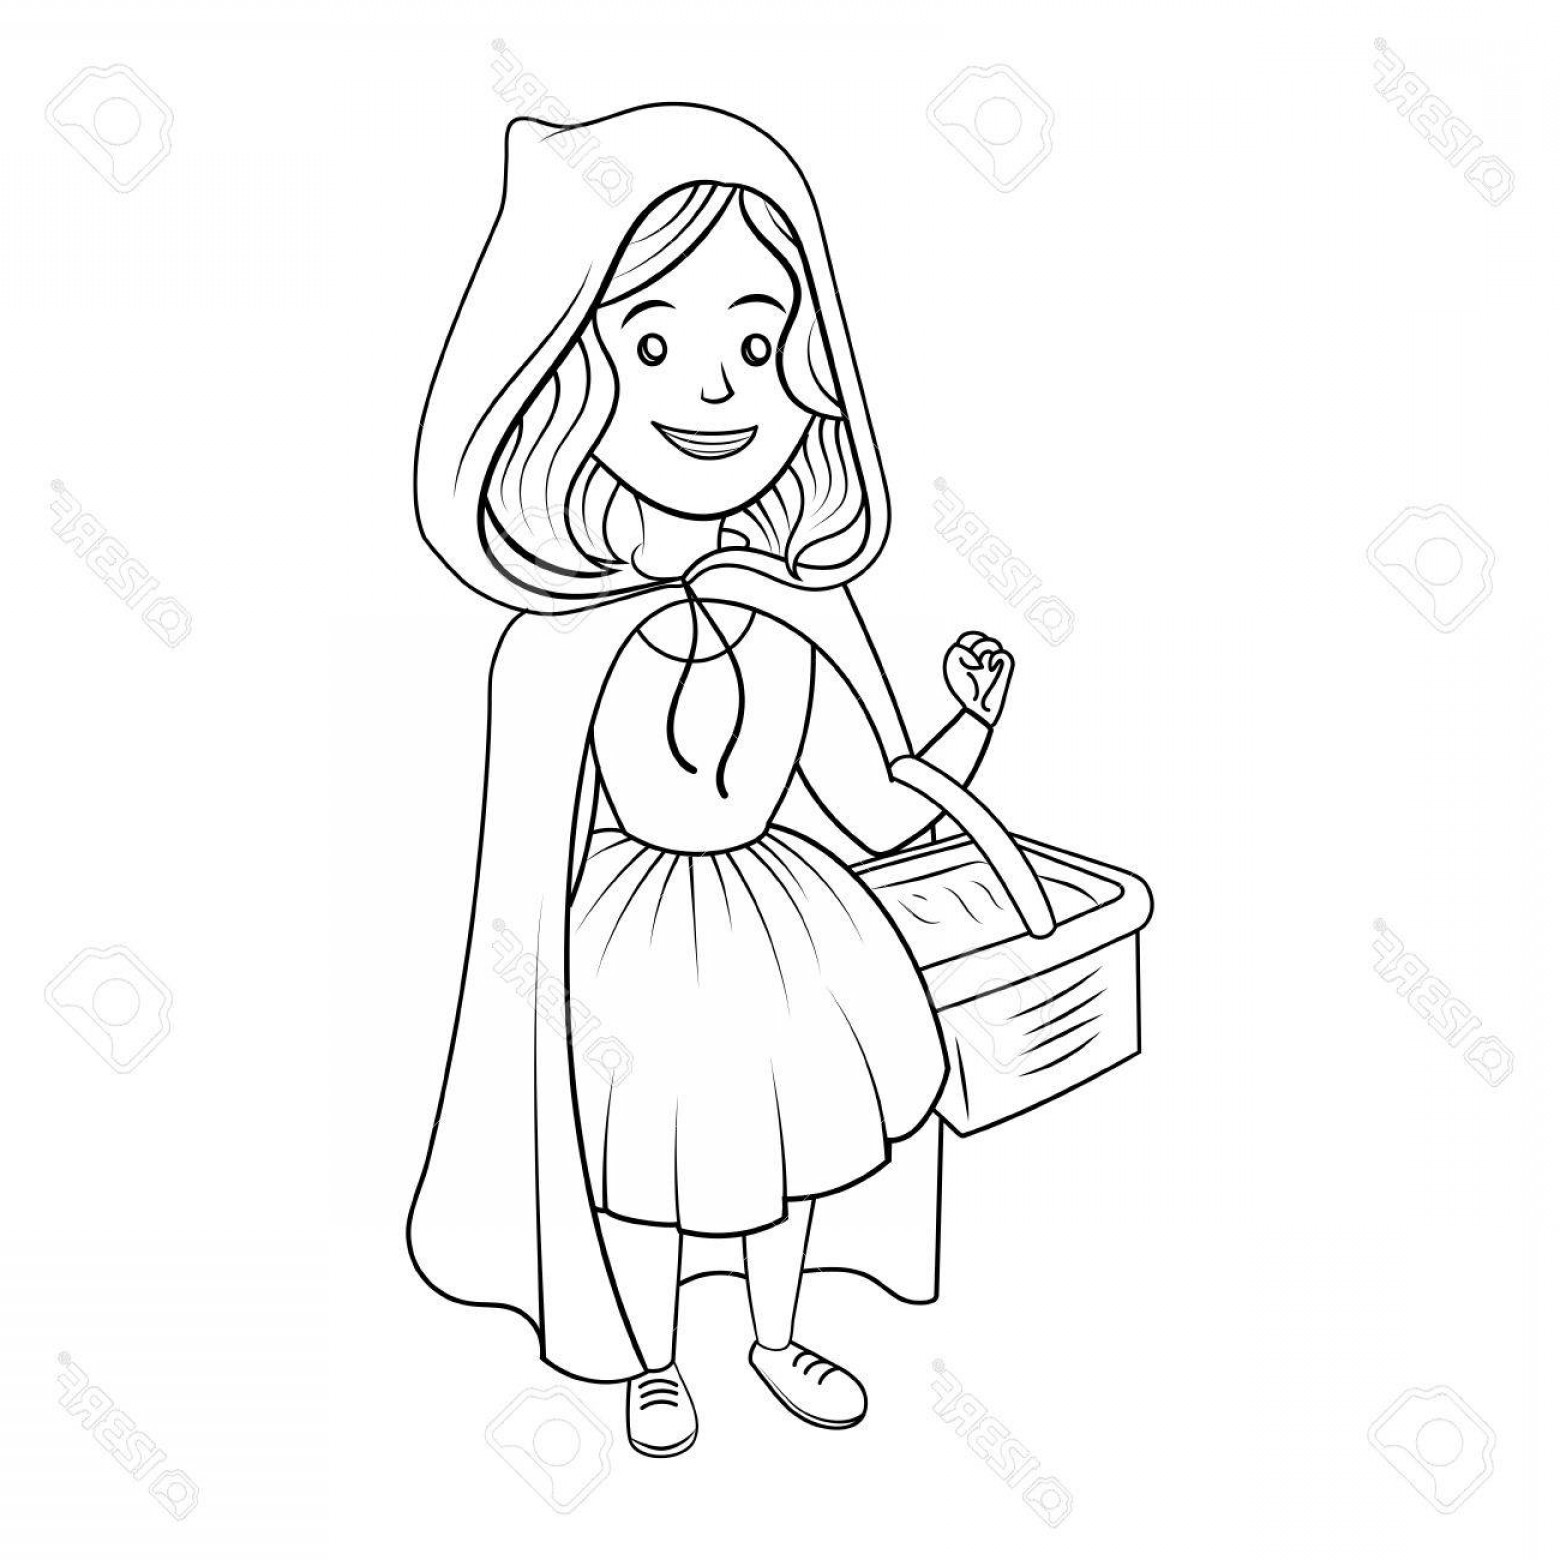 Red riding hood clipart black and white vector transparent stock Photostock Vector Little Red Riding Hood Coloring Book Vector | SOIDERGI vector transparent stock